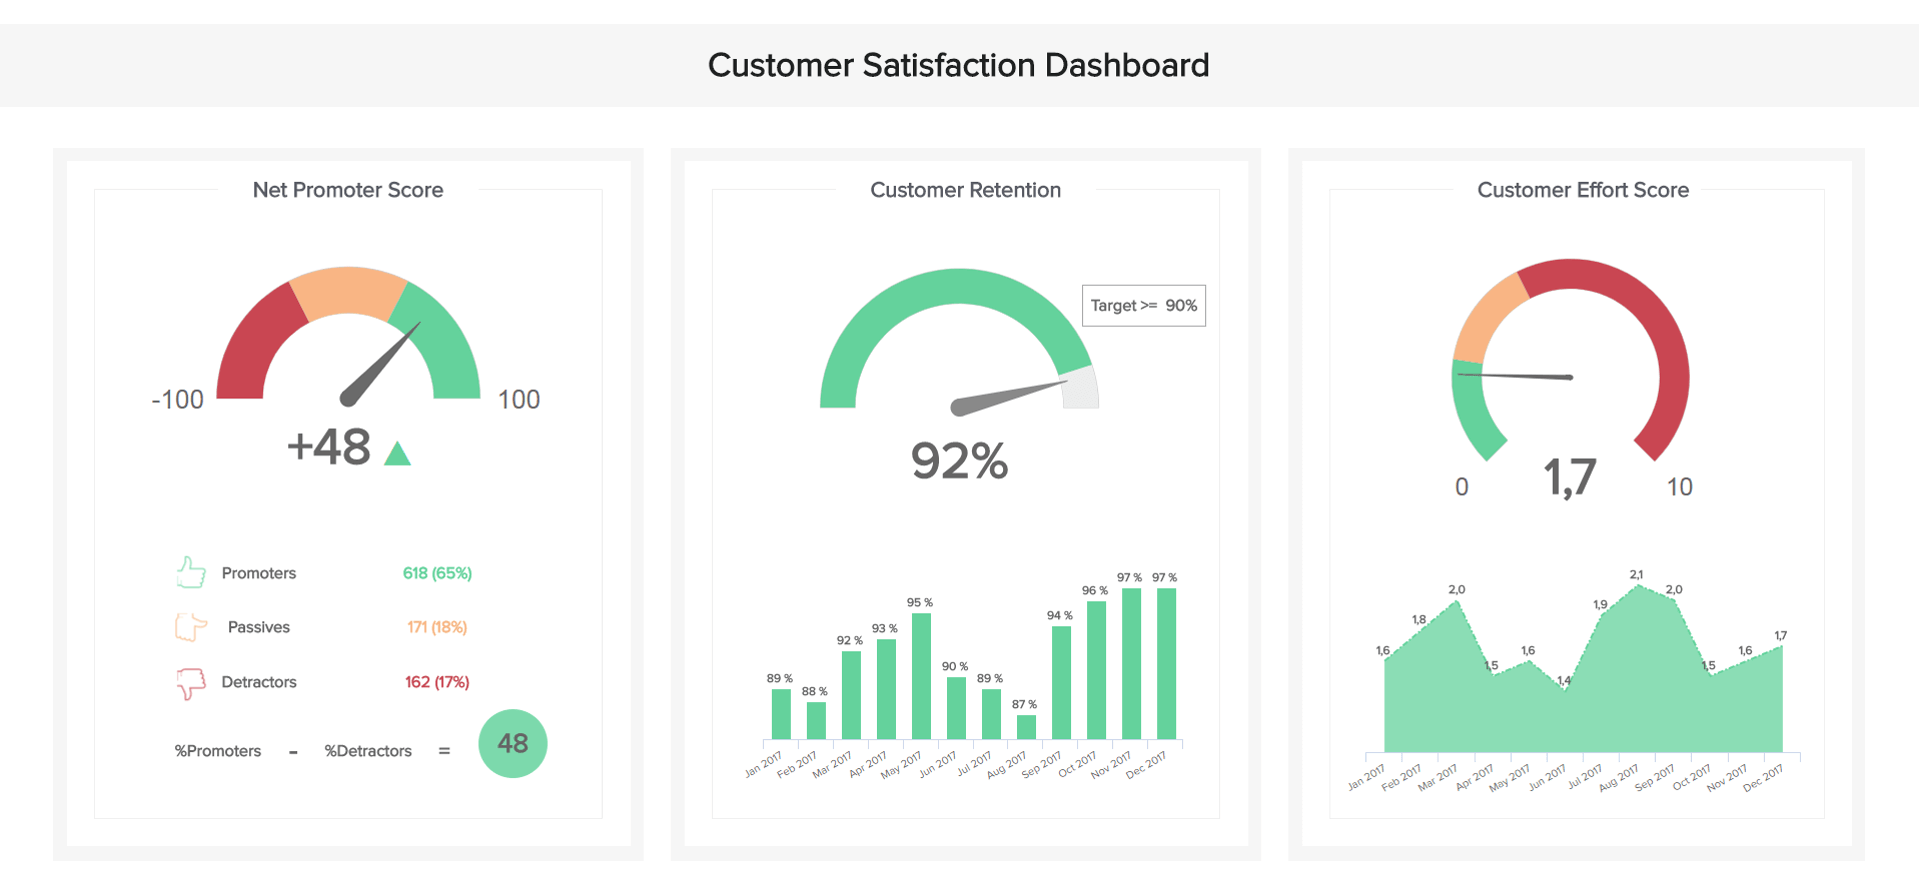 The Customer Satisfaction dashboard displays the Customer Effort Score, the Net Promoter Score, that both impact the customer satisfaction.